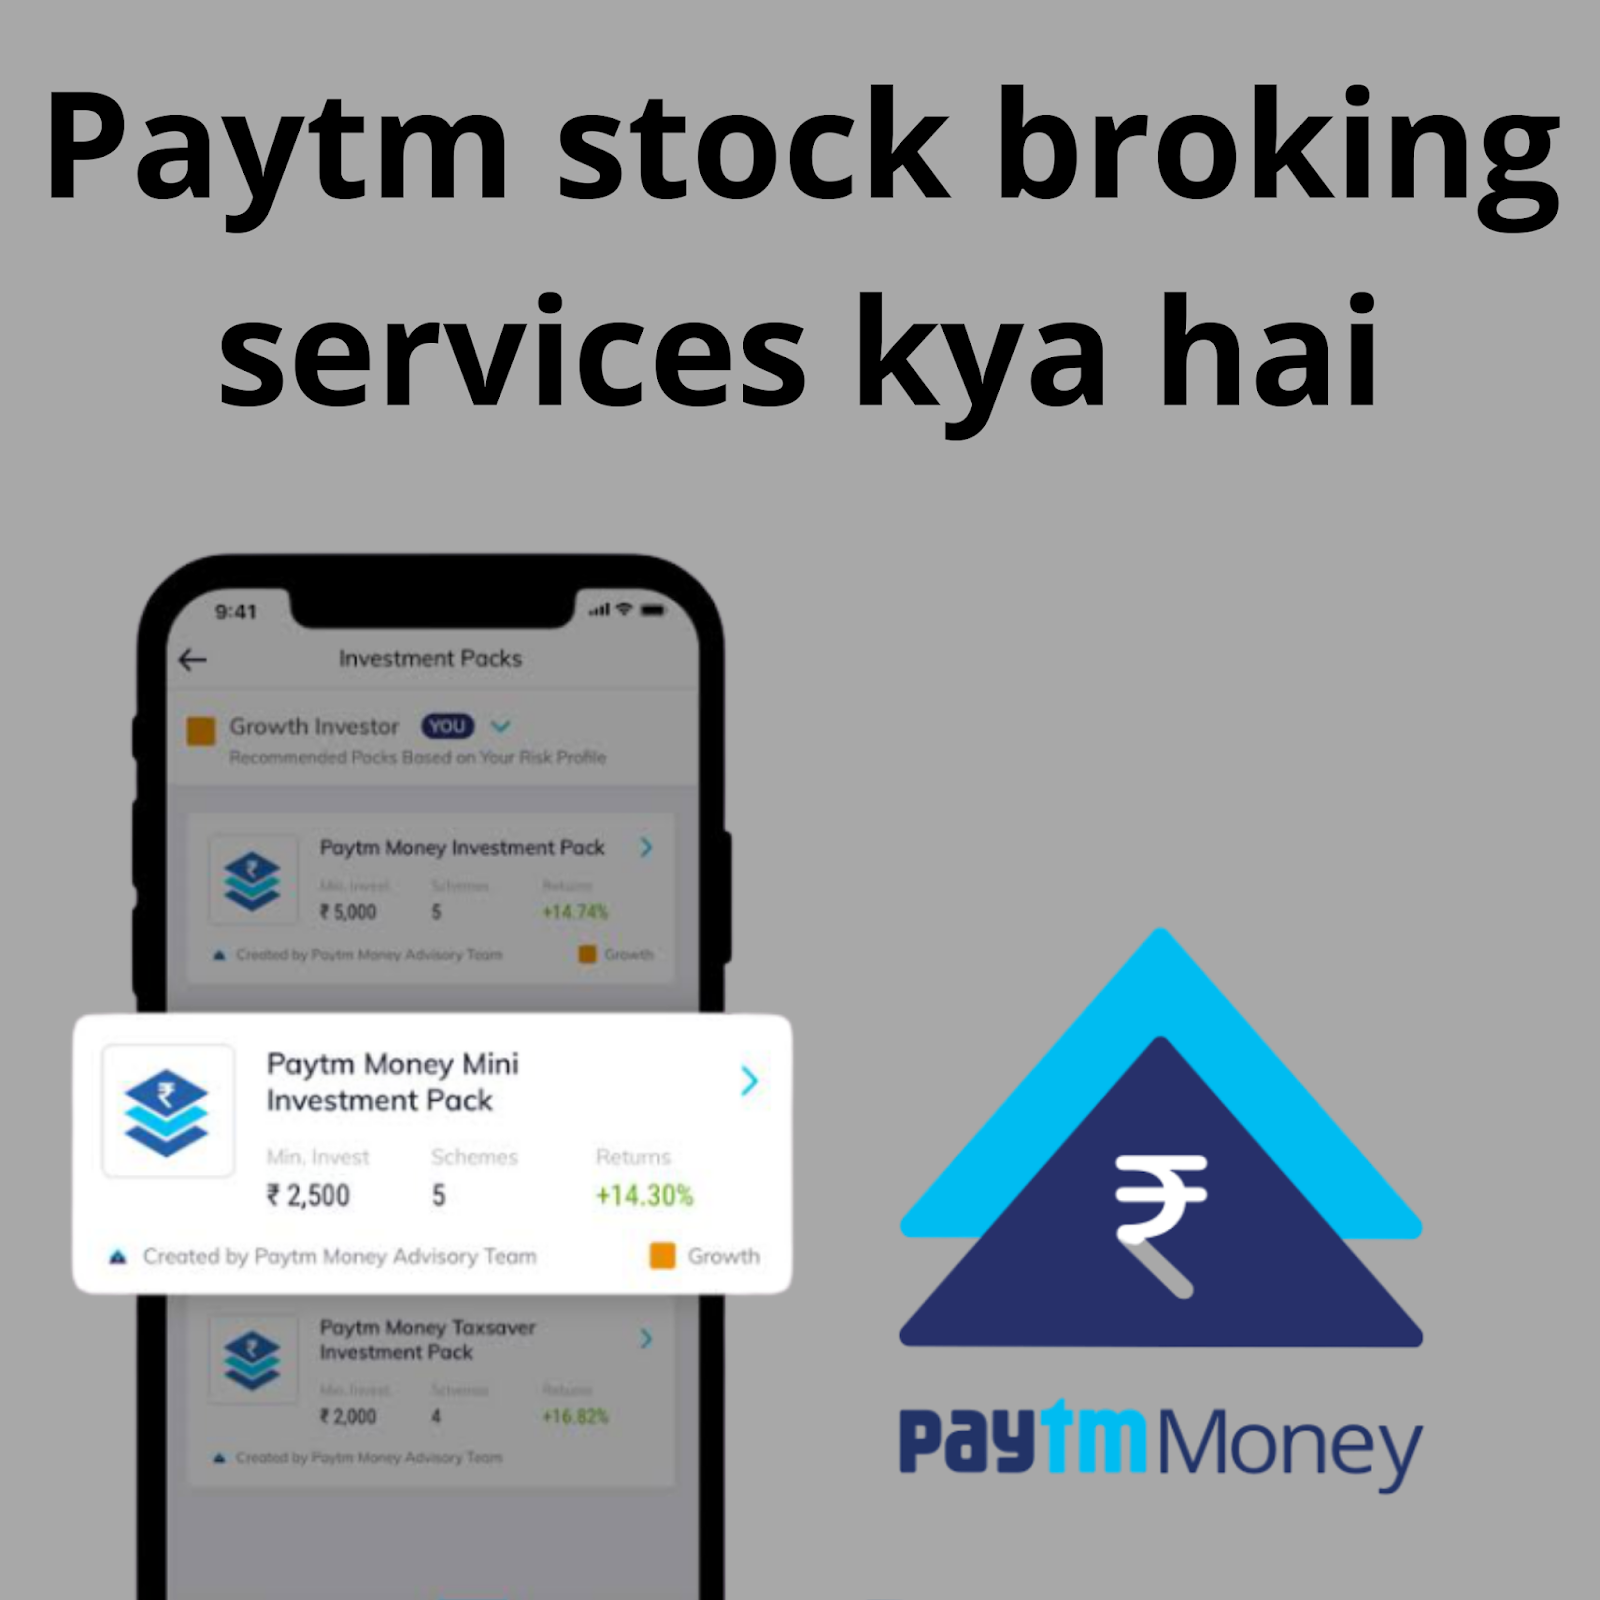 Paytm stock broking services kya hai